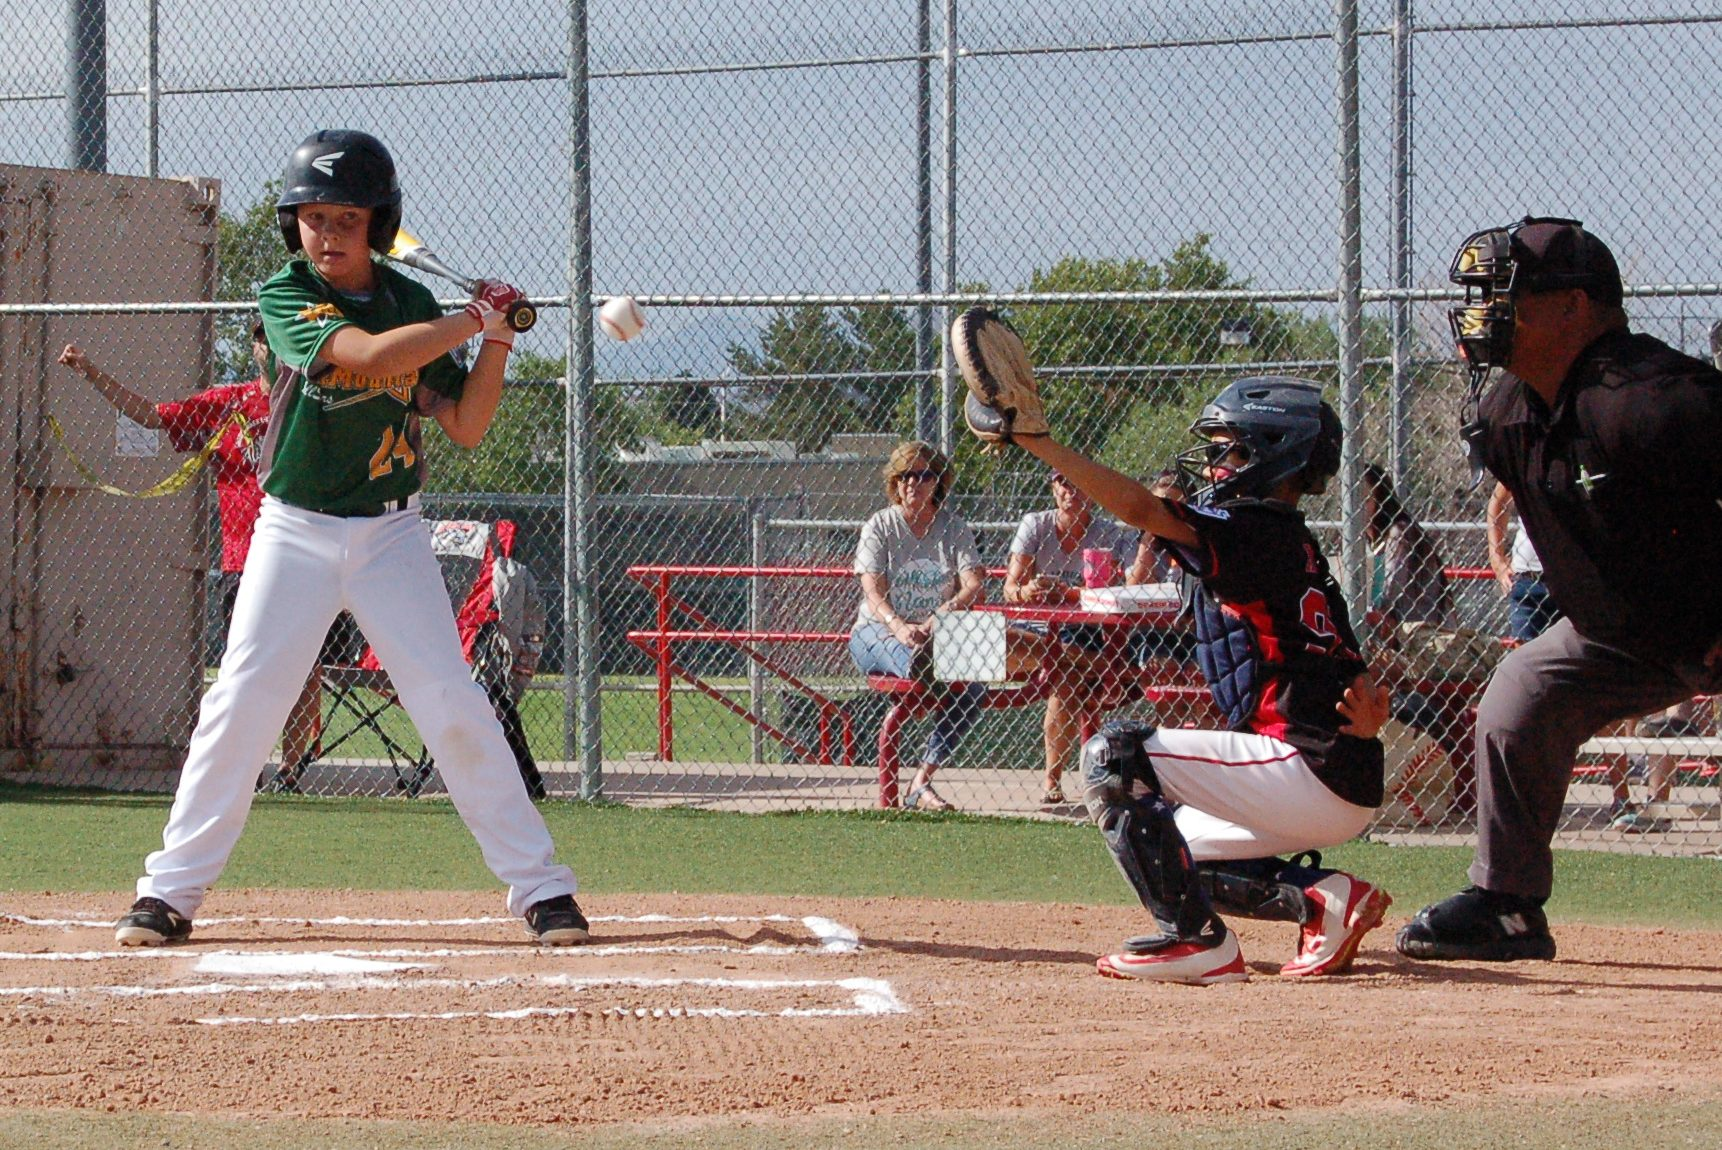 East Mountain Little League All-Star teams start strong at district tourney